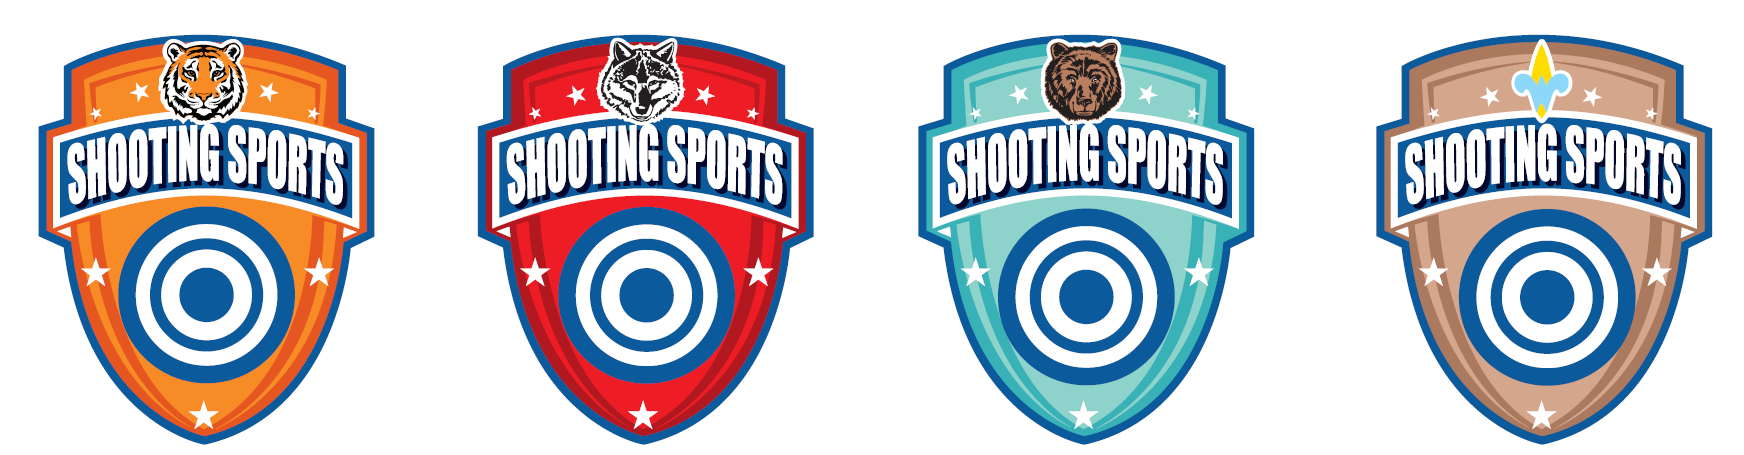 Image result for shooting sports awards cub scouts